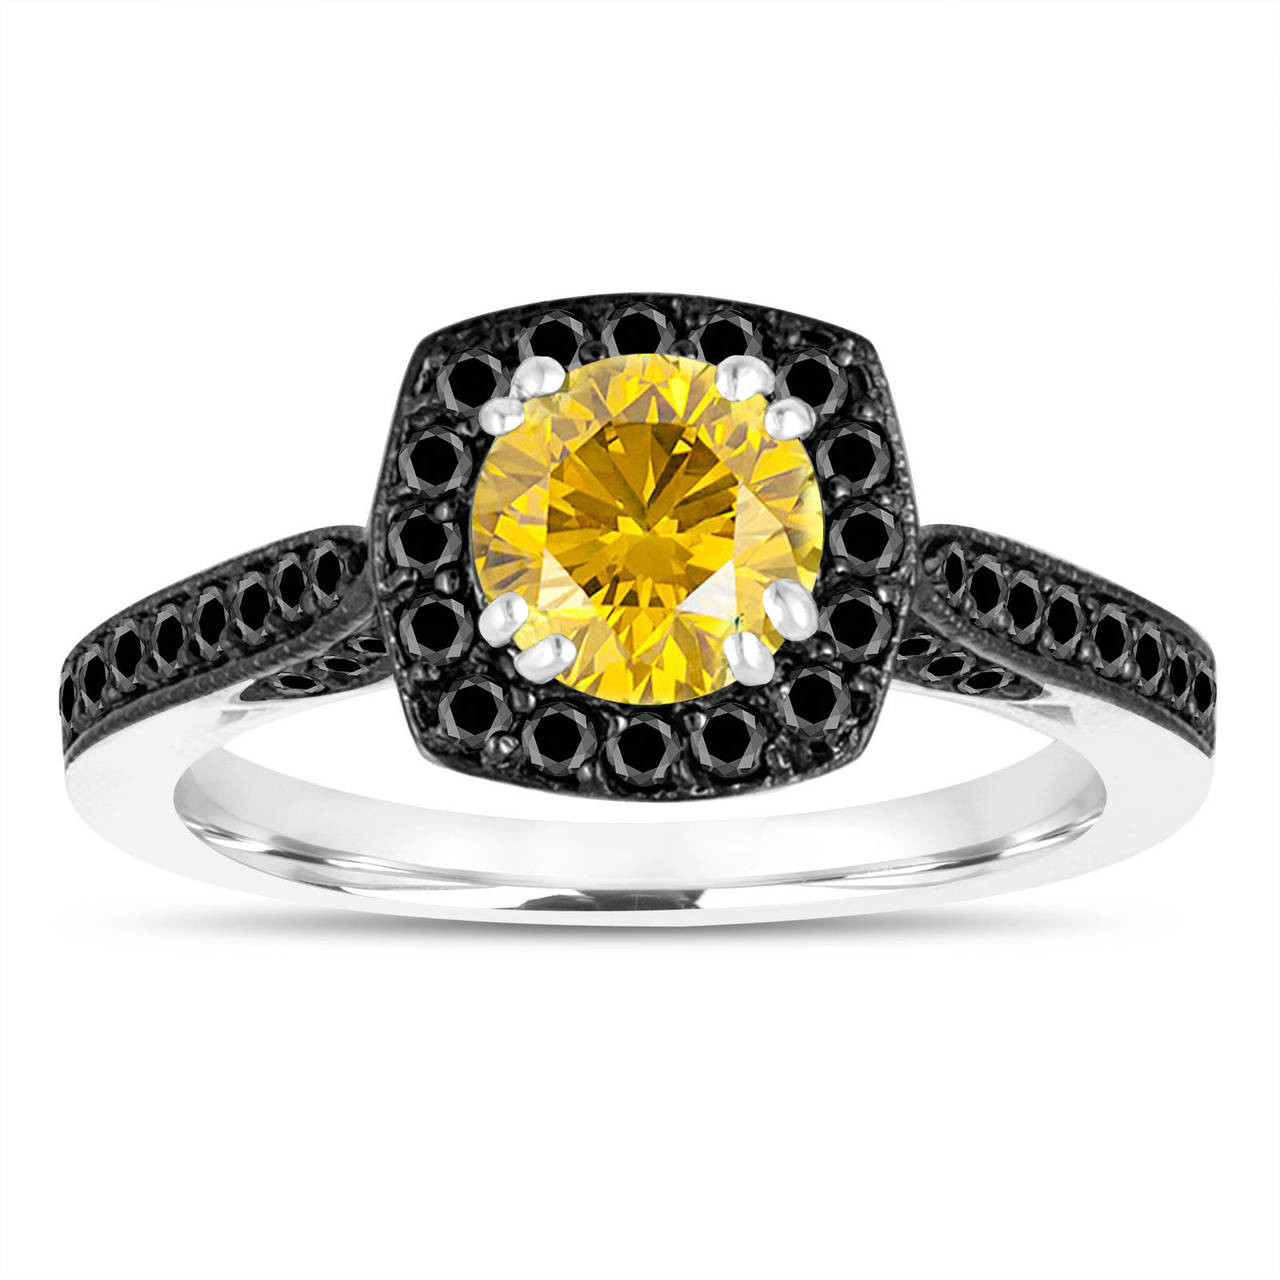 engagement wedding gold black diamond rings diamonds yellow carat canary certified ring pave white with halo